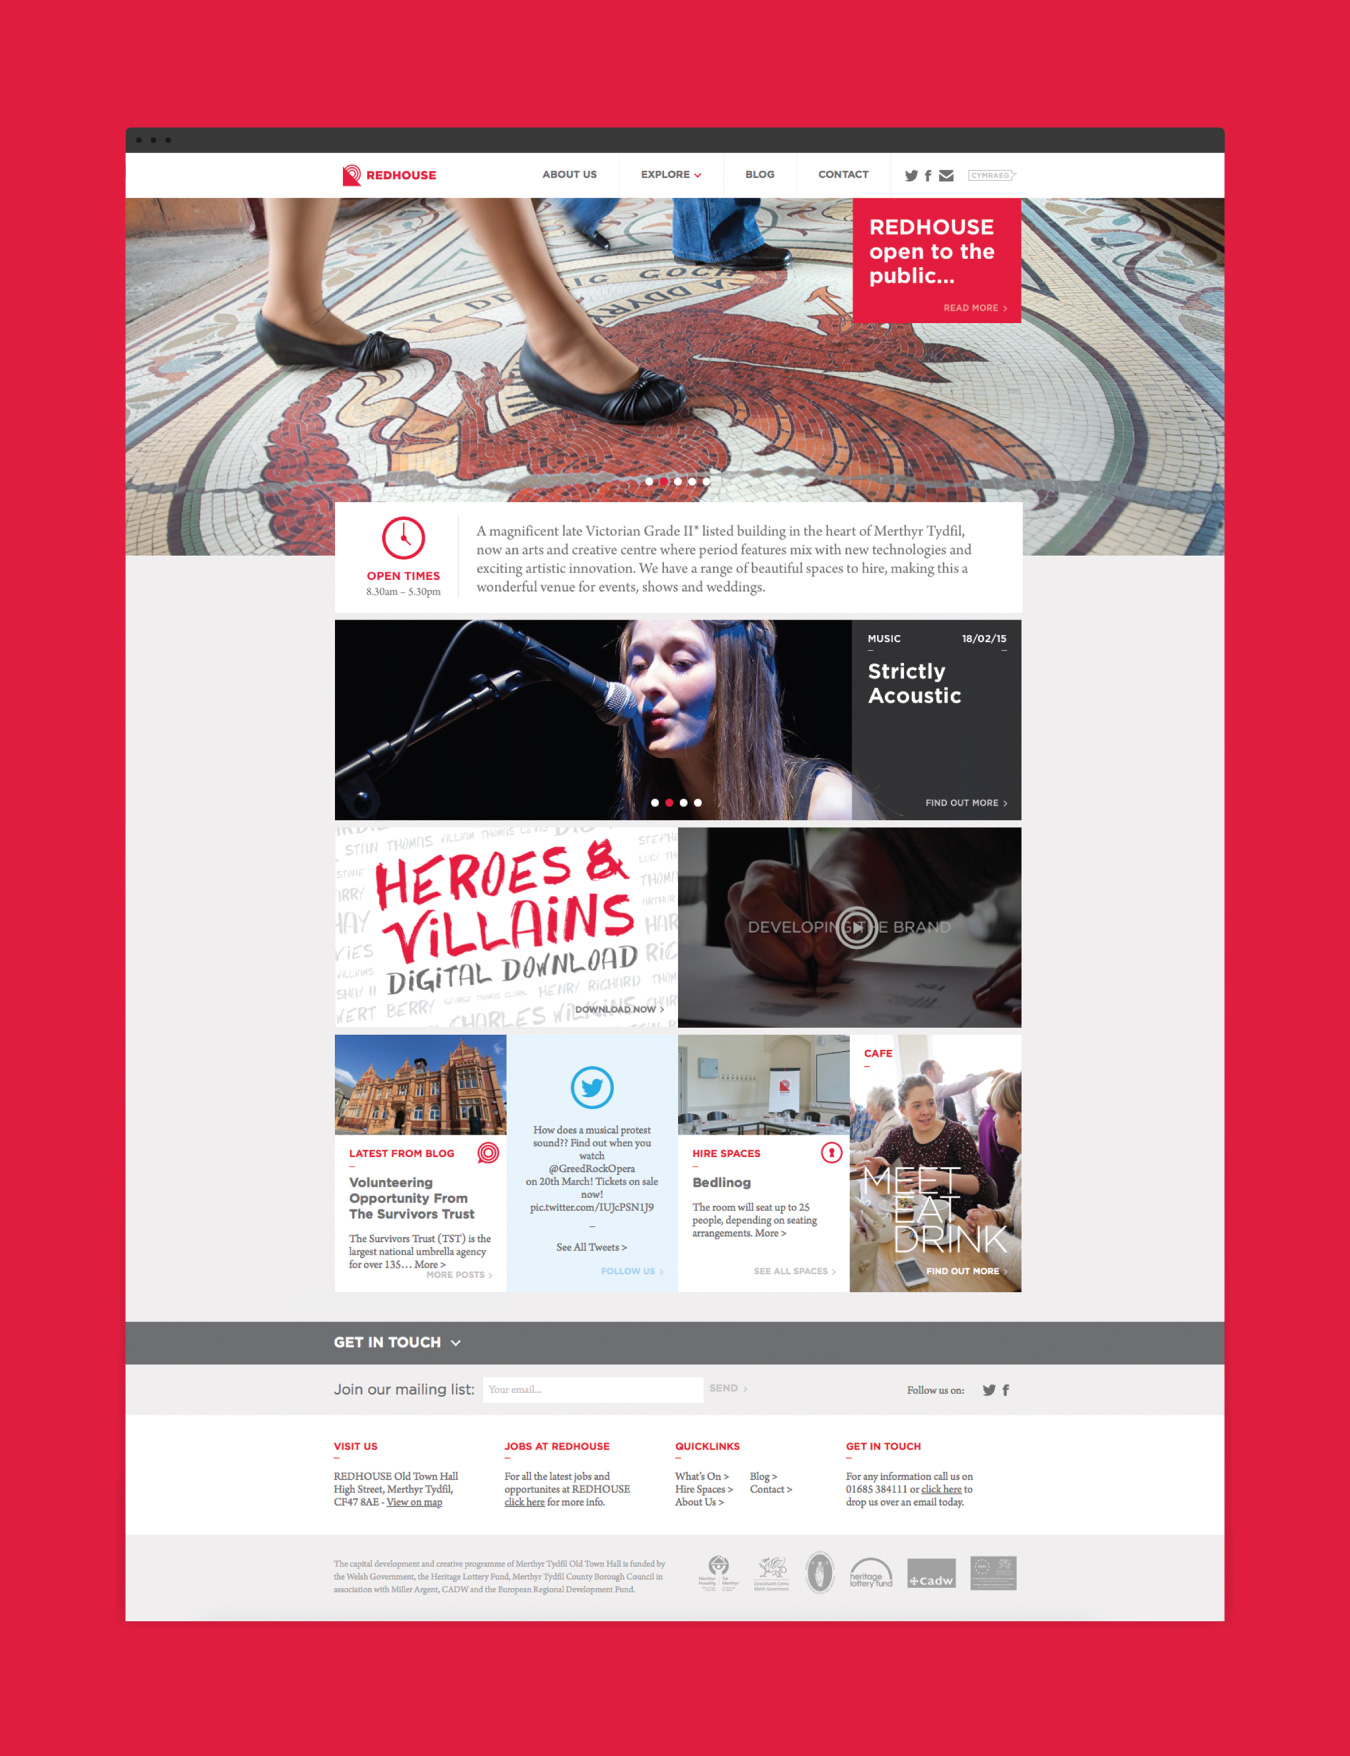 redhouse-website-hdd-2